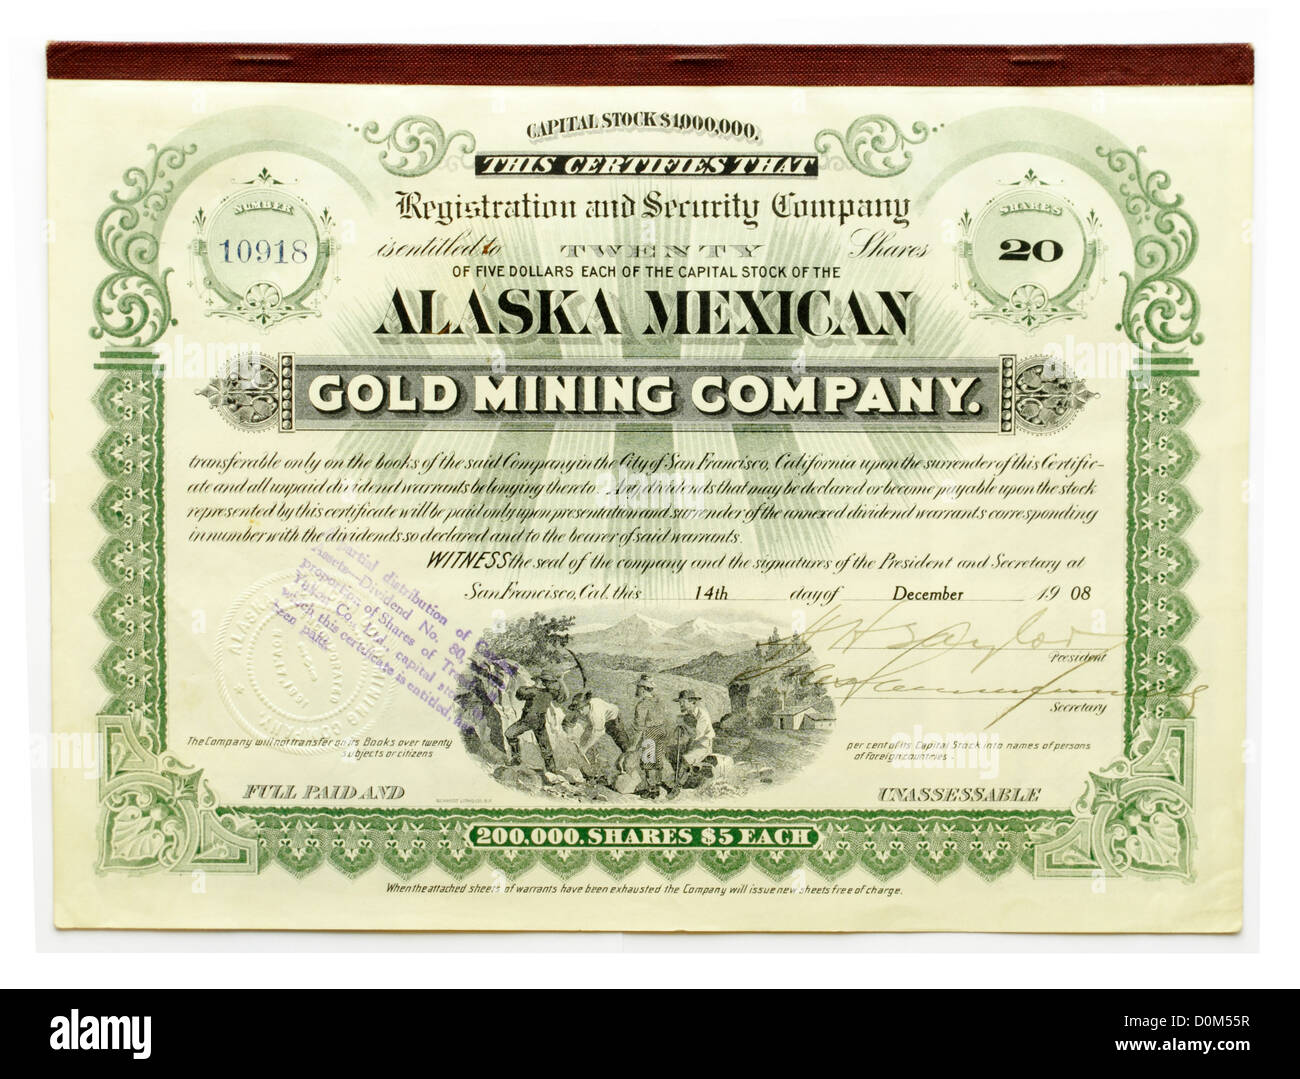 Share certificate of the Alaska Mexican Gold Mining Company Gold